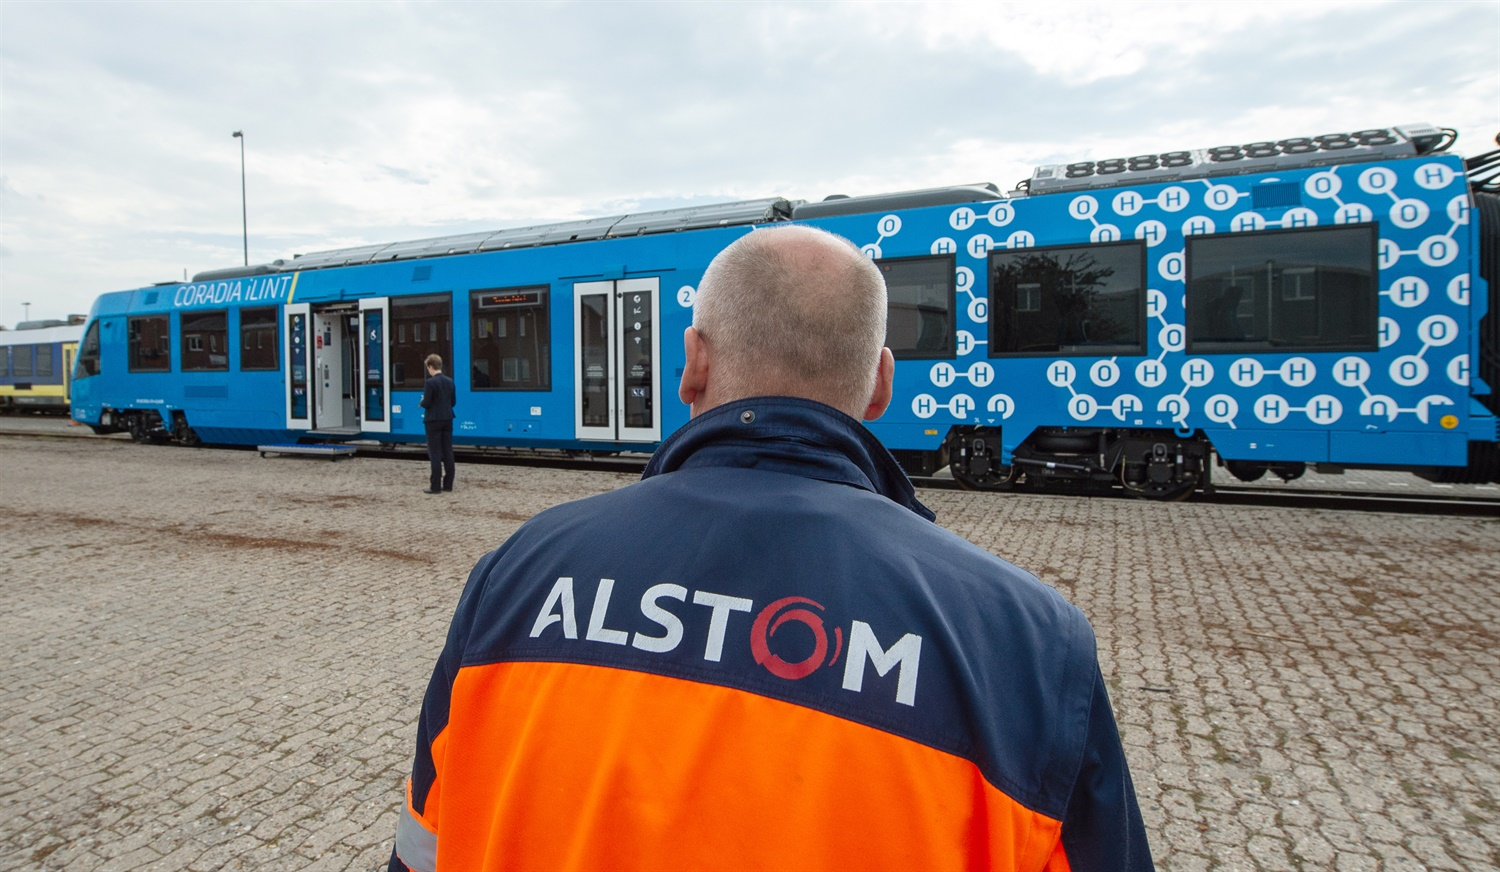 German watchdog raises 'serious doubts' over Siemens-Alstom merger in latest blow